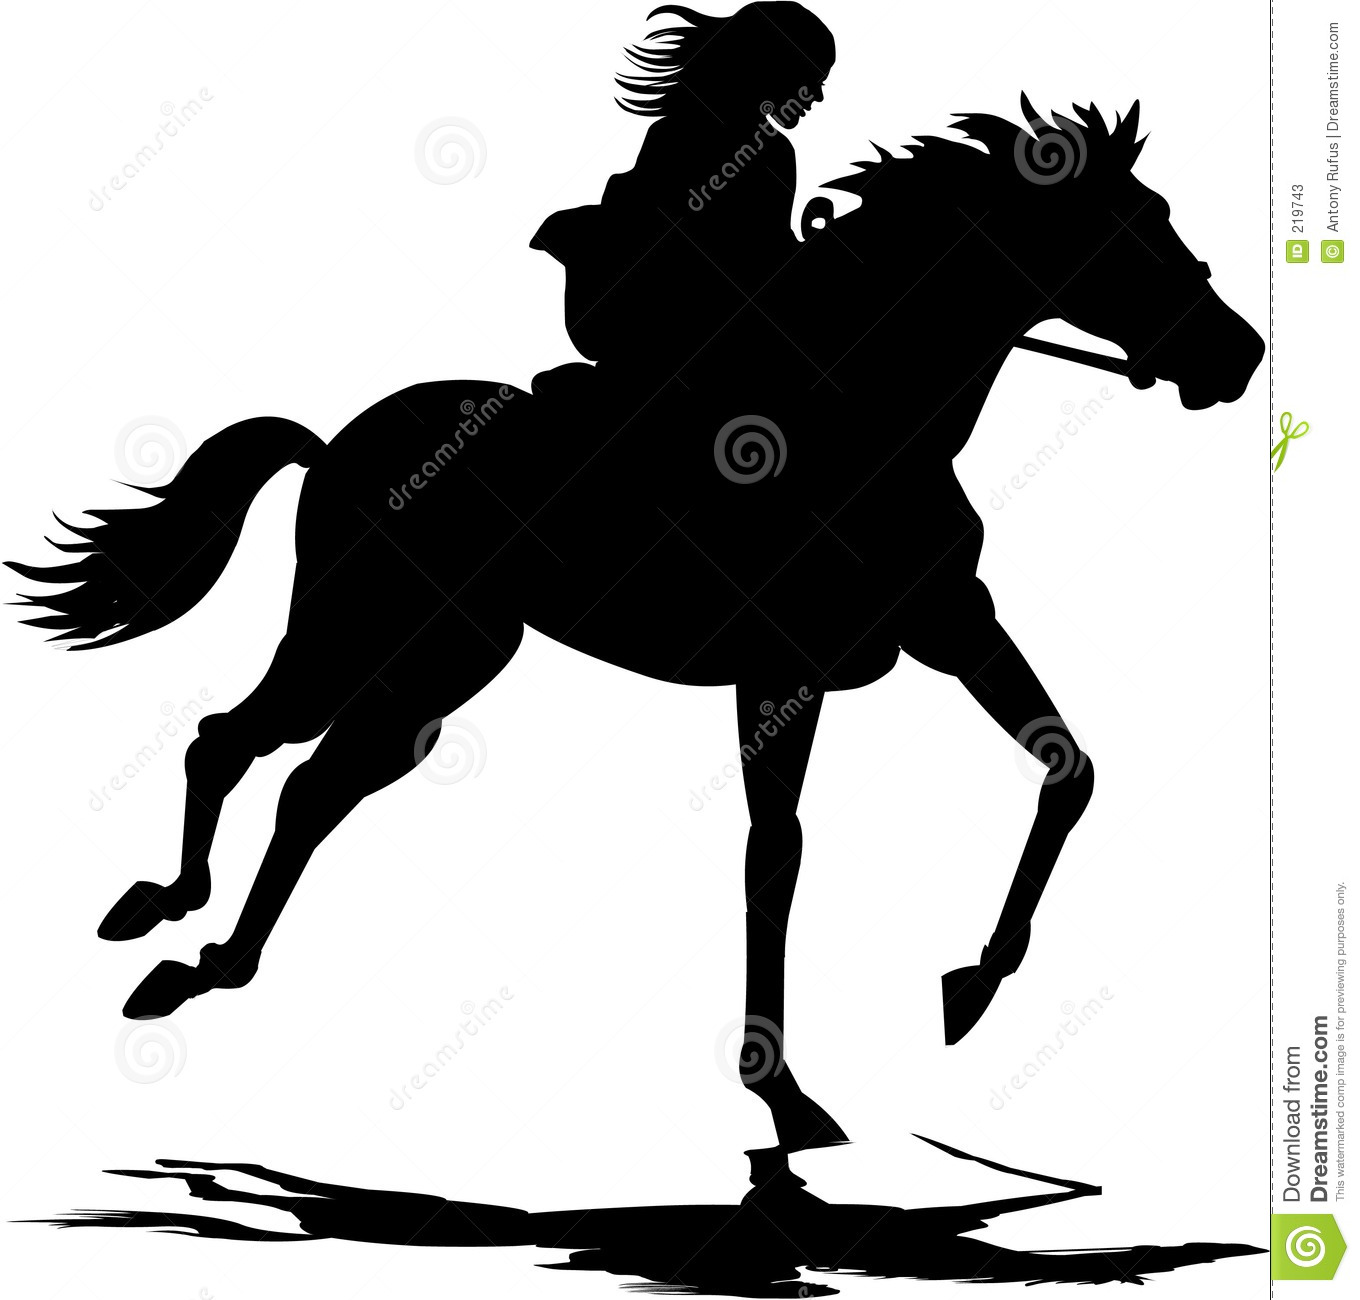 Cowgirl riding silhouette woman horseback riding clipart clipart kid